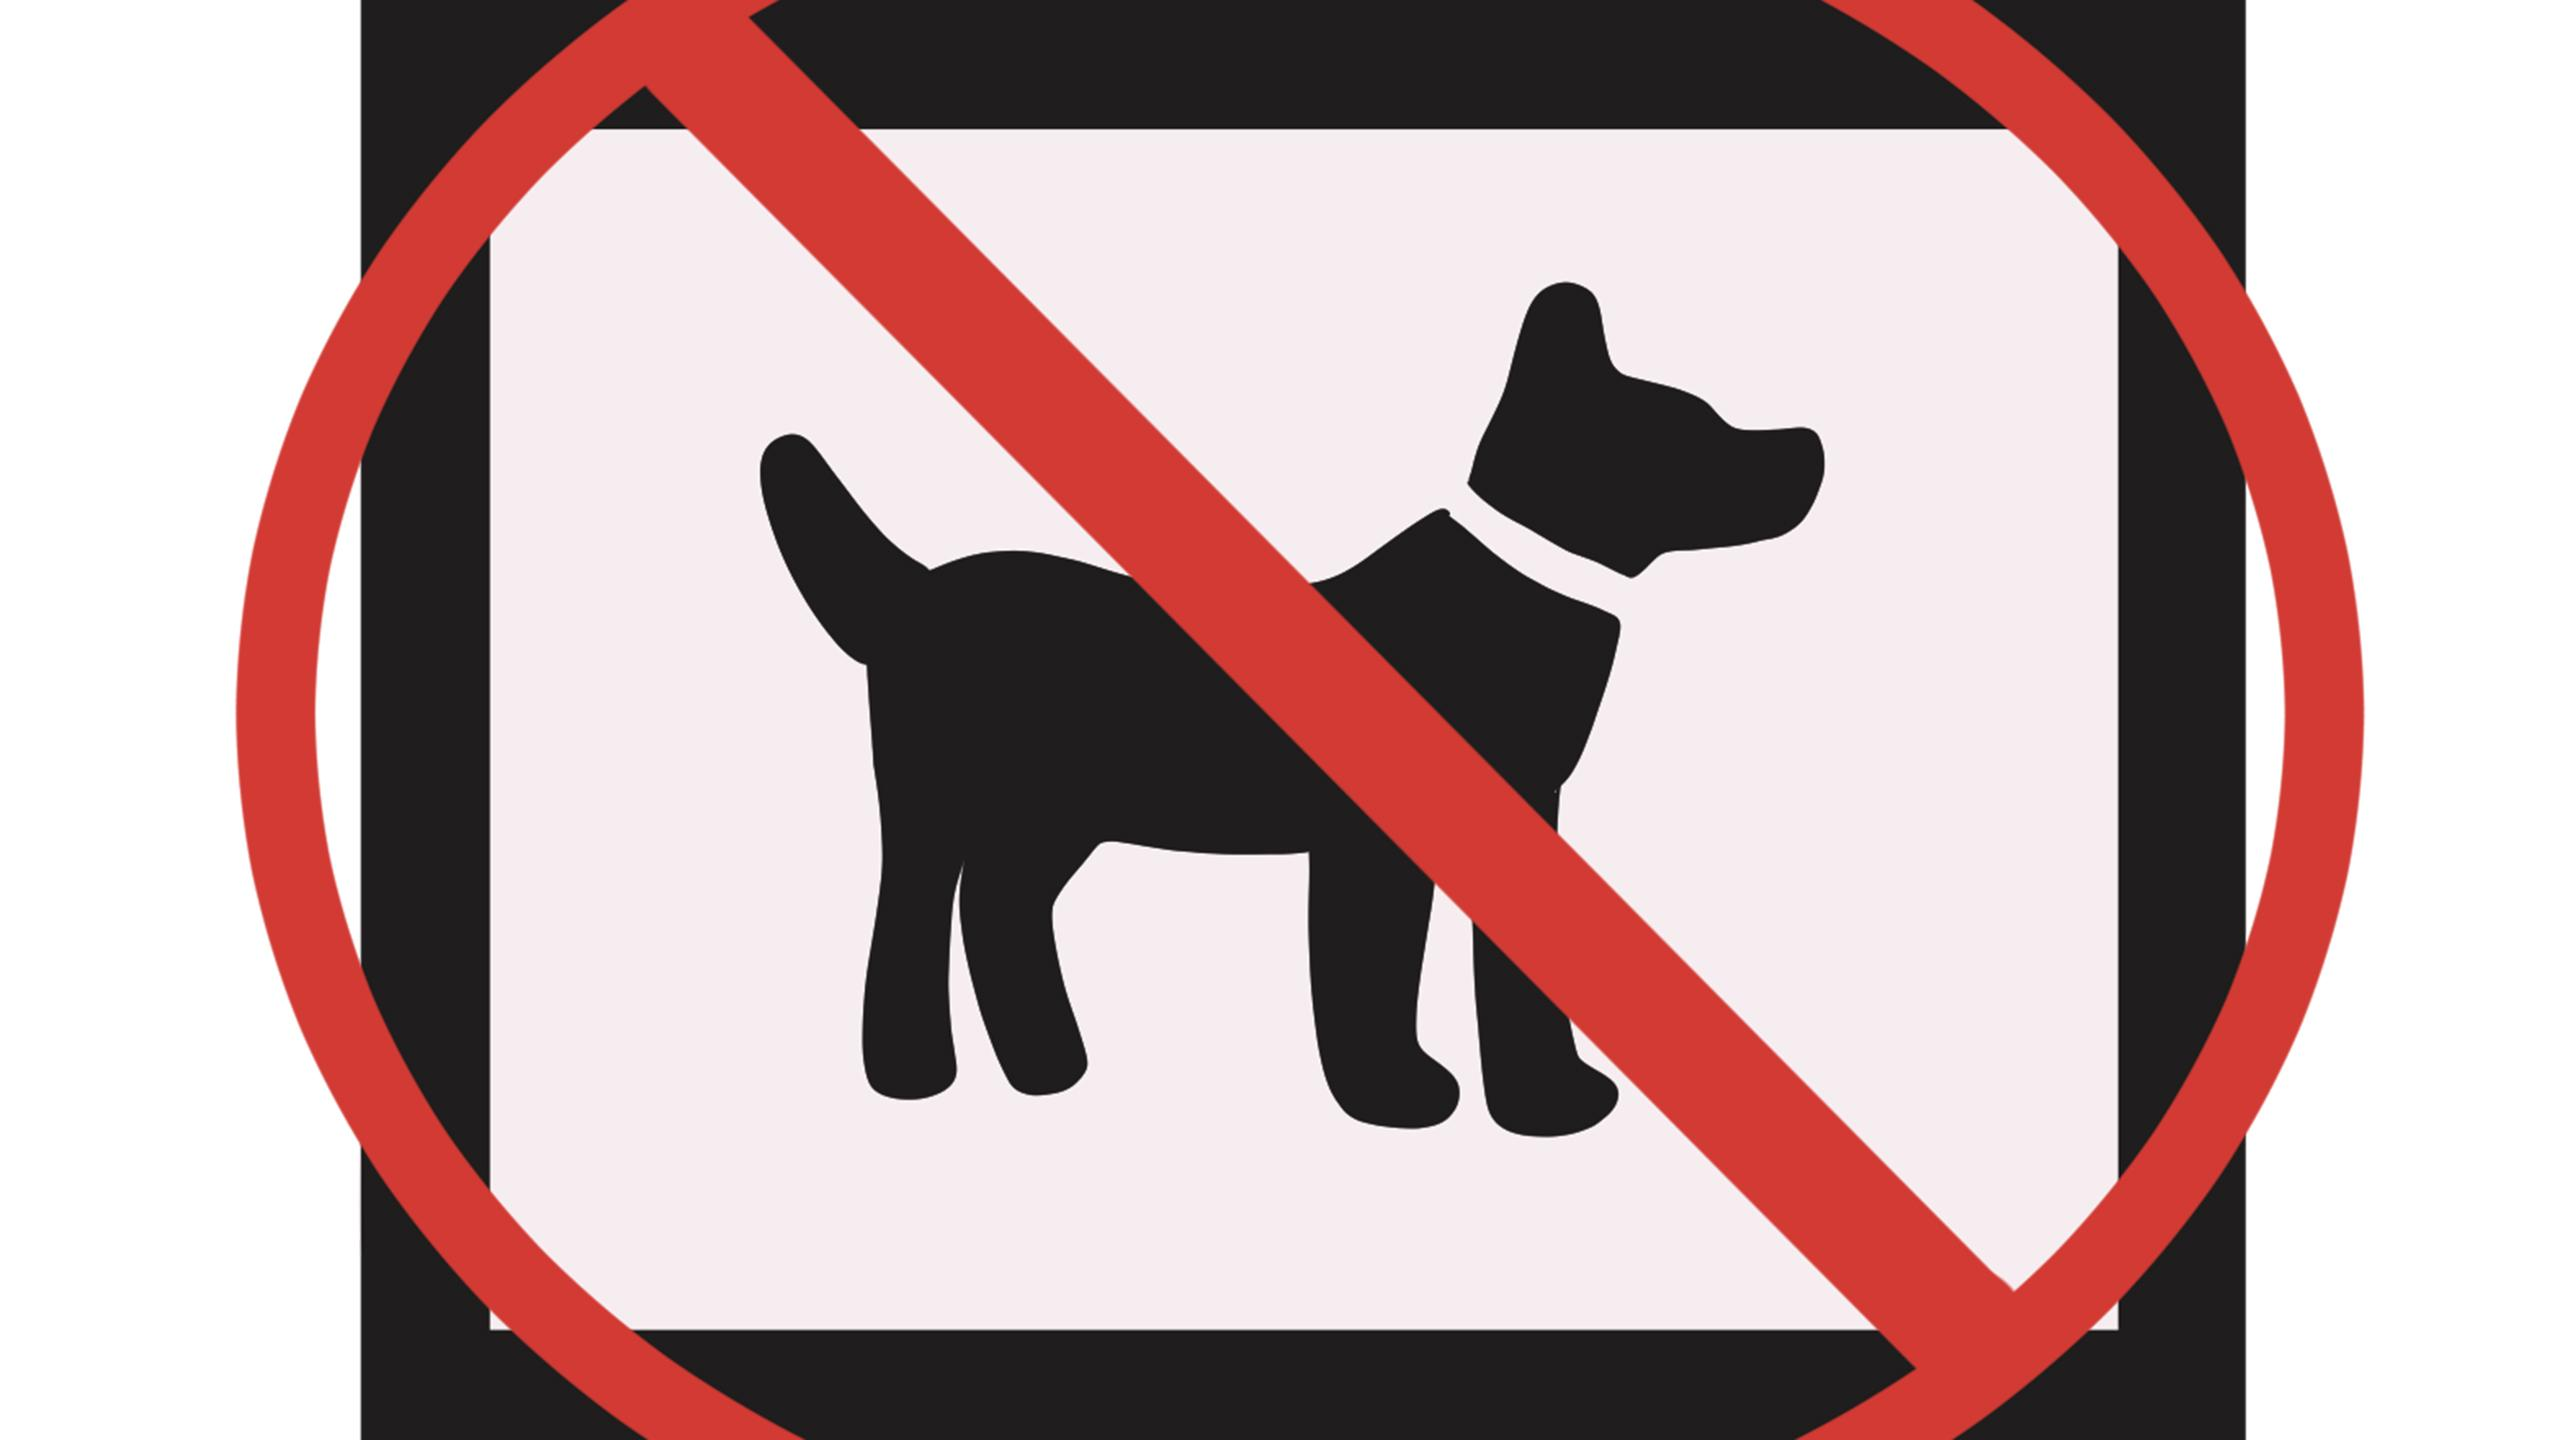 Illustration of a silhouette of a dog with a no symbol over it.